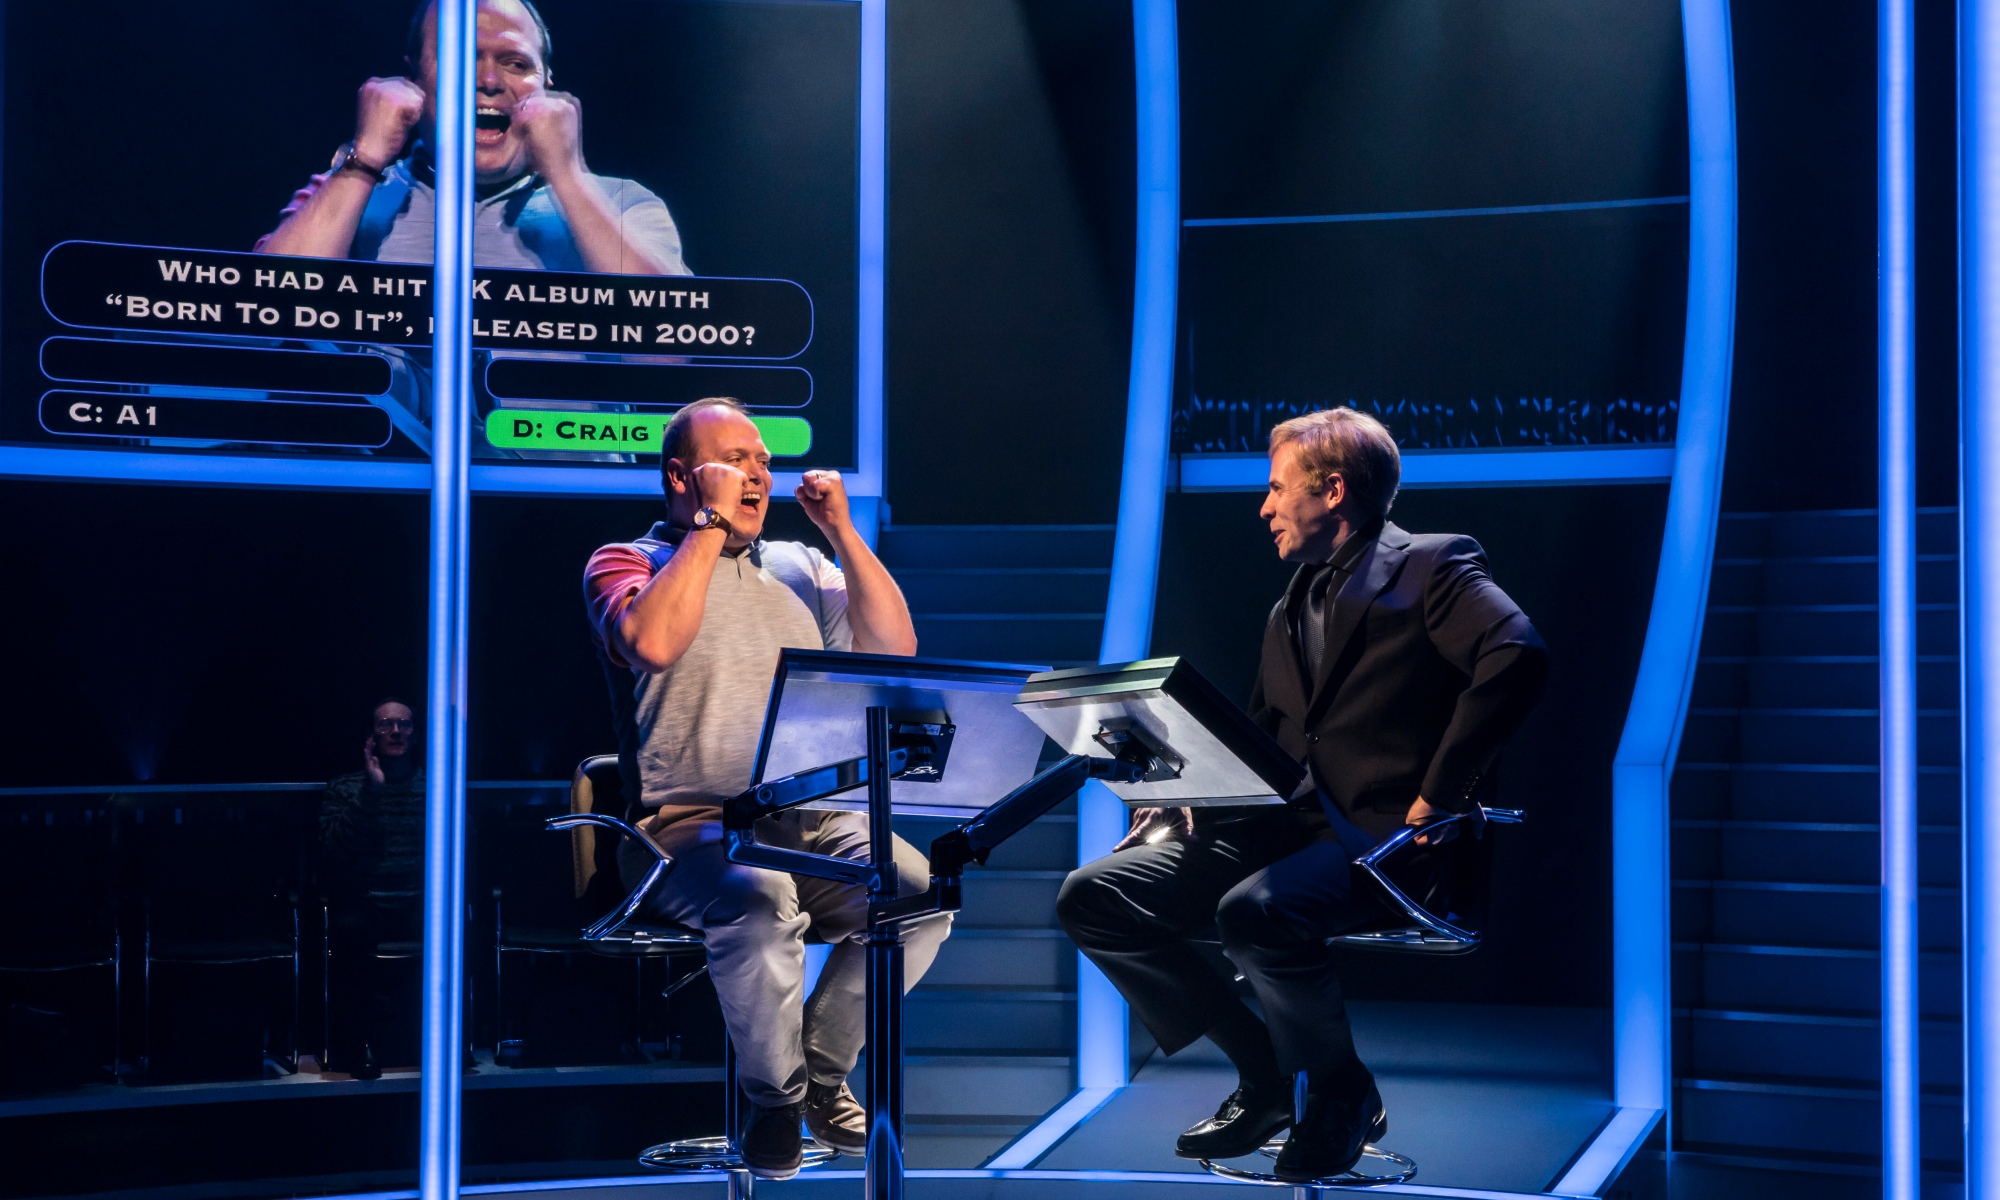 Production image of Quiz showing a contestant on the left raising his fists as he got a correct answer, while the actor on the right playing Chris Tarrant smiles.